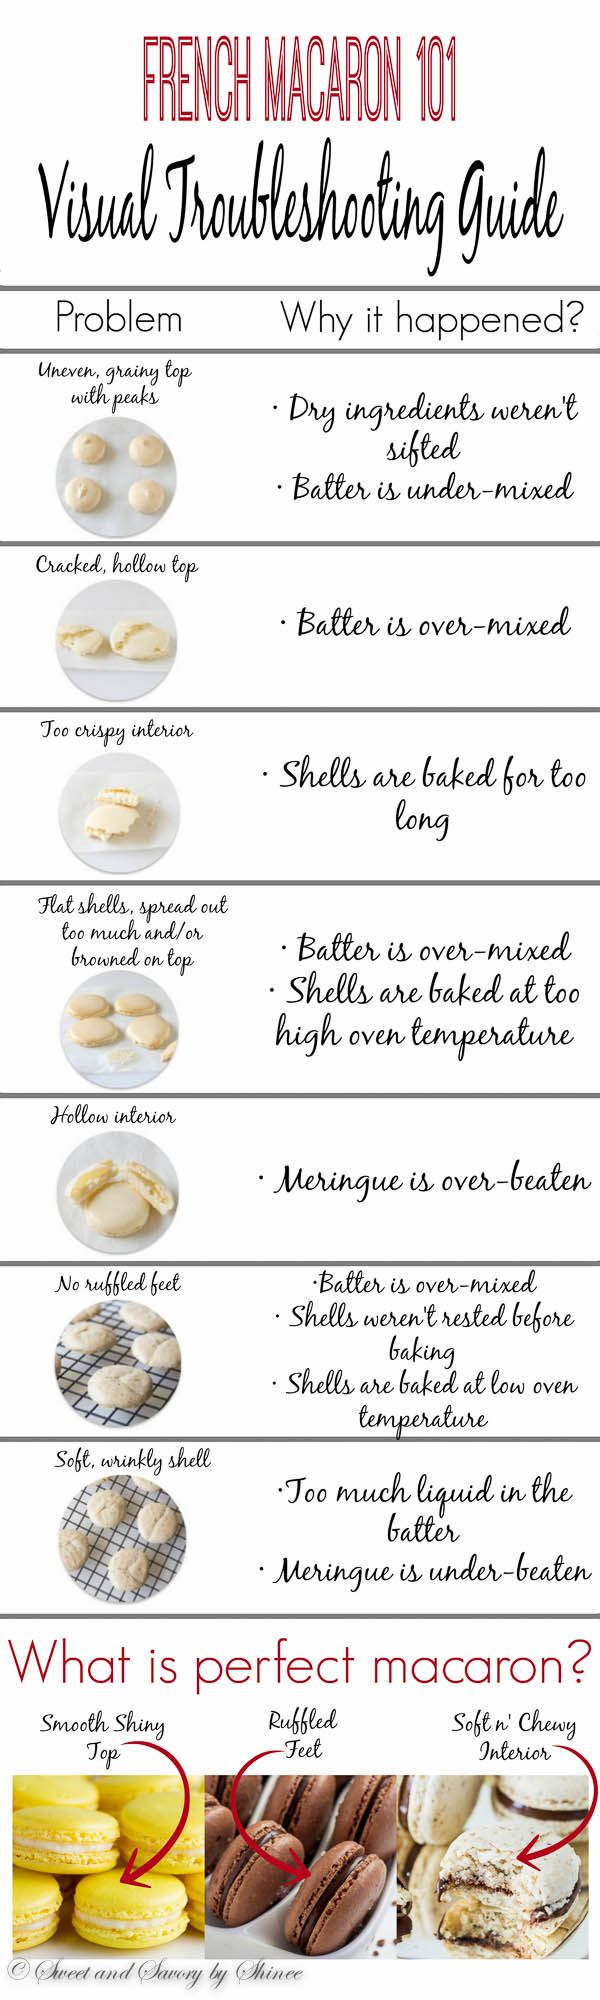 Attention, macaron-lovers! Check out my complete French Macaron 101 for detailed tips and tricks to perfect your macaron skills. Plus, visual troubleshooting guide to solve the most common problems!